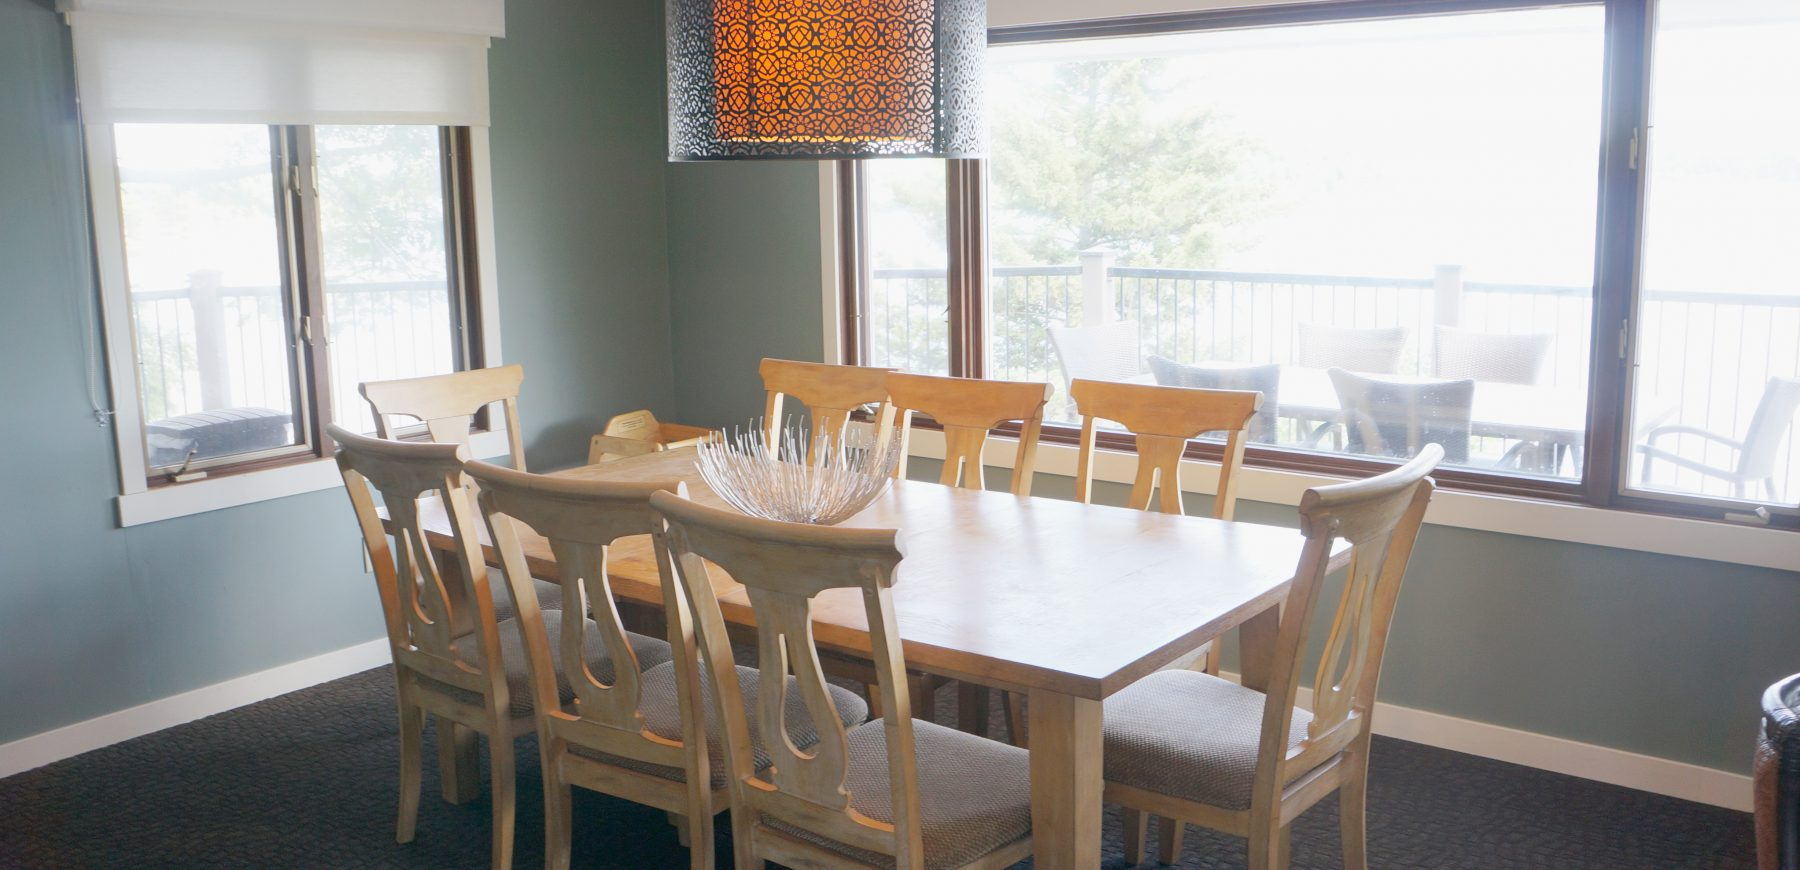 Madden House Dining Room